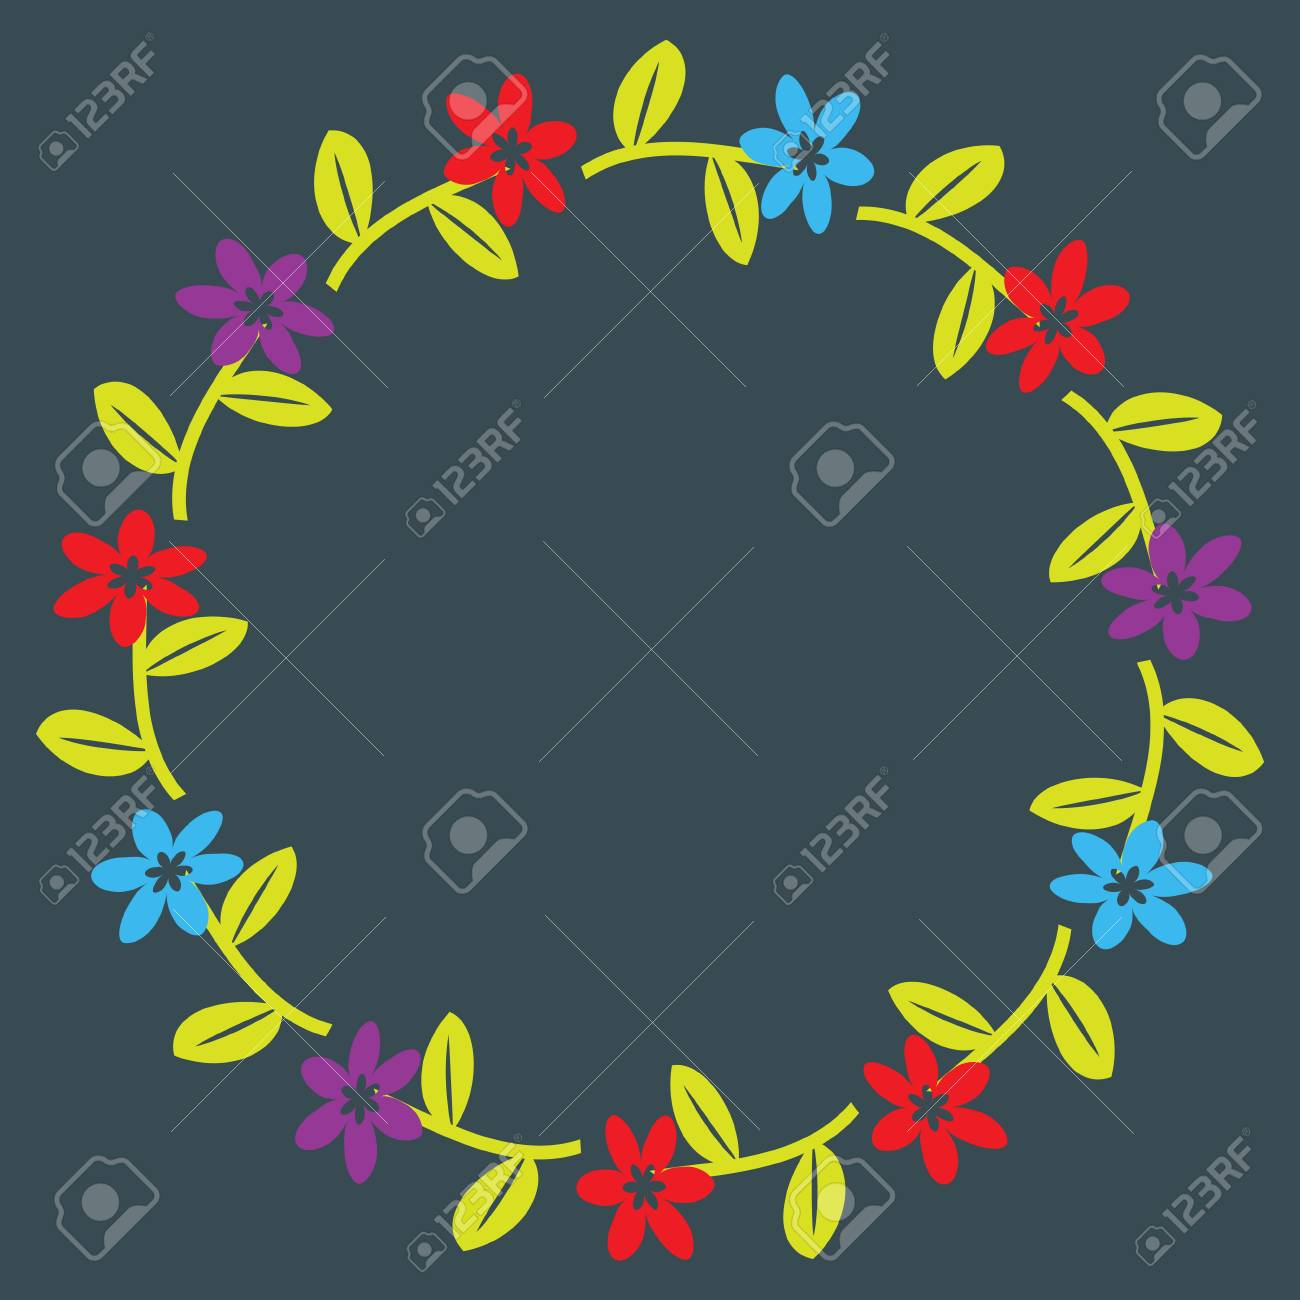 Floral wreath with decorative flowers Stock Vector - 16122580